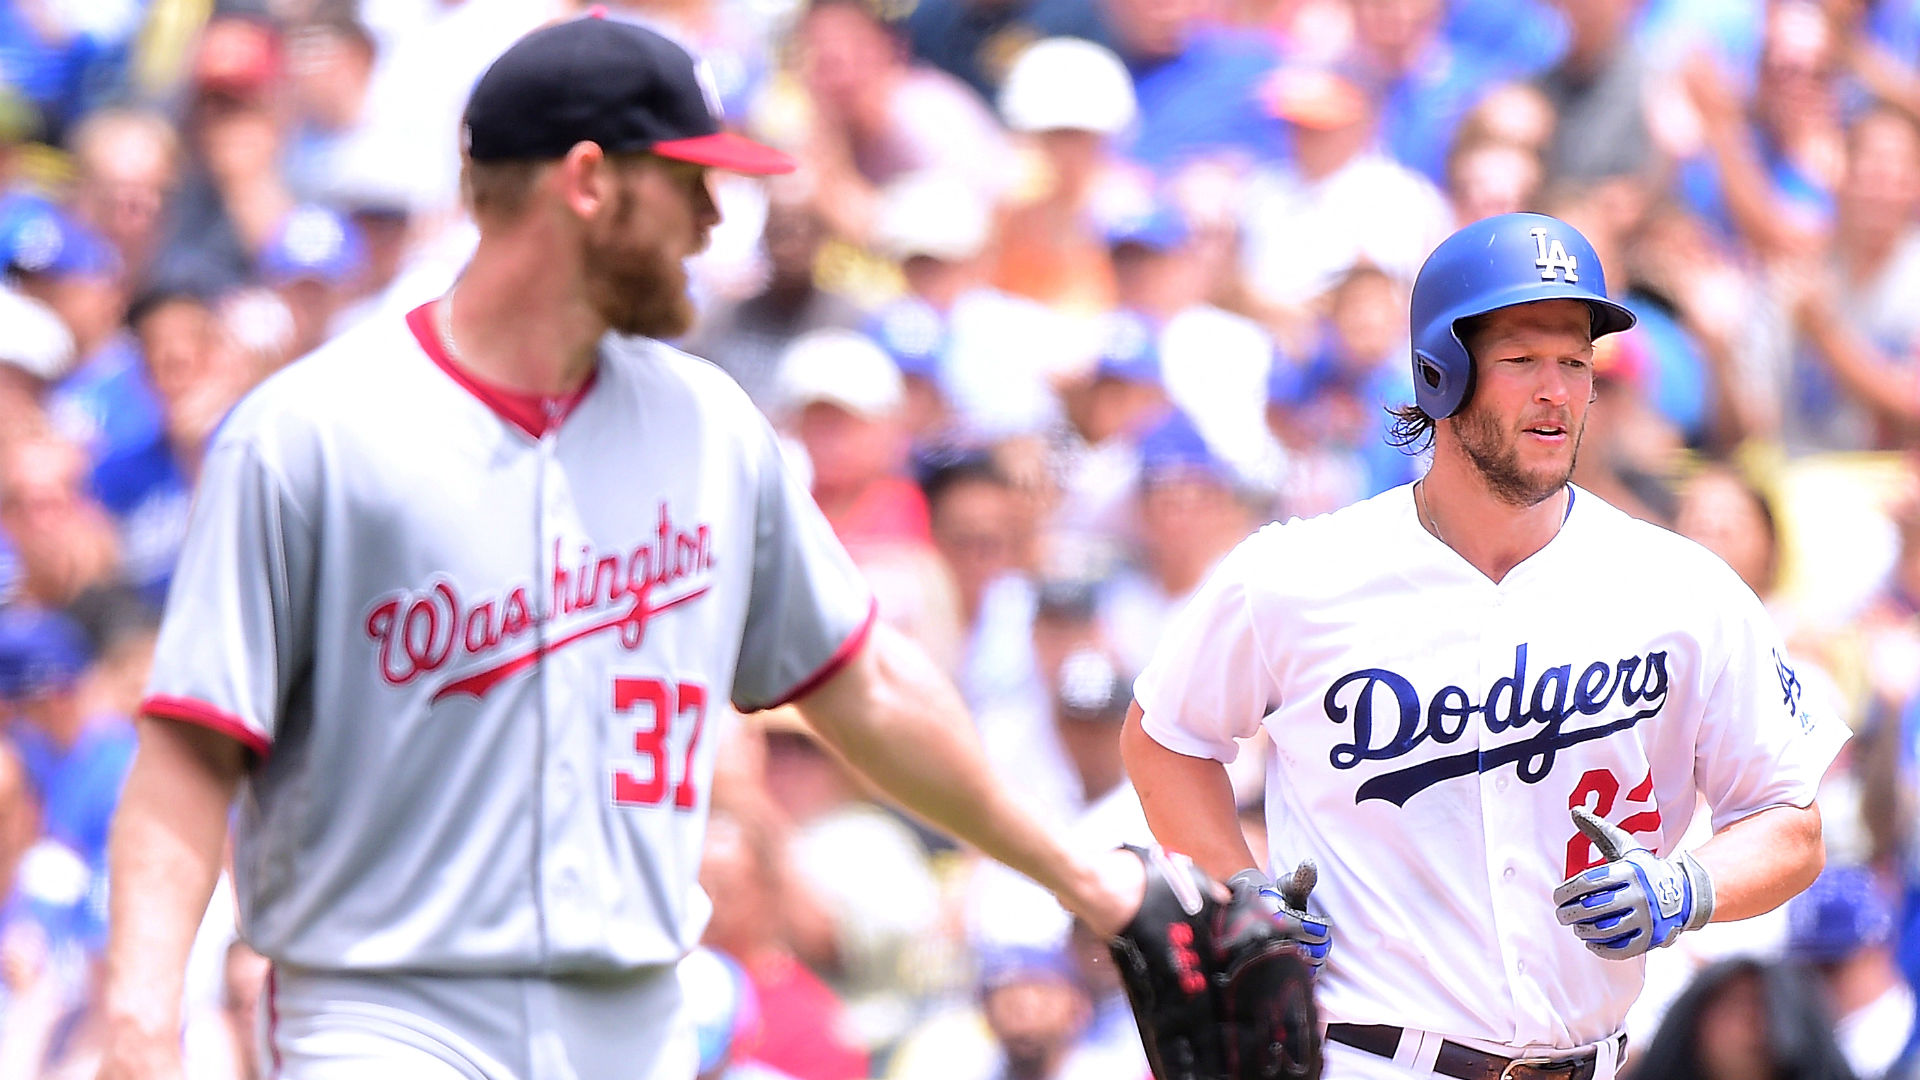 Kershaw outduels Strasburg in Dodgers' win